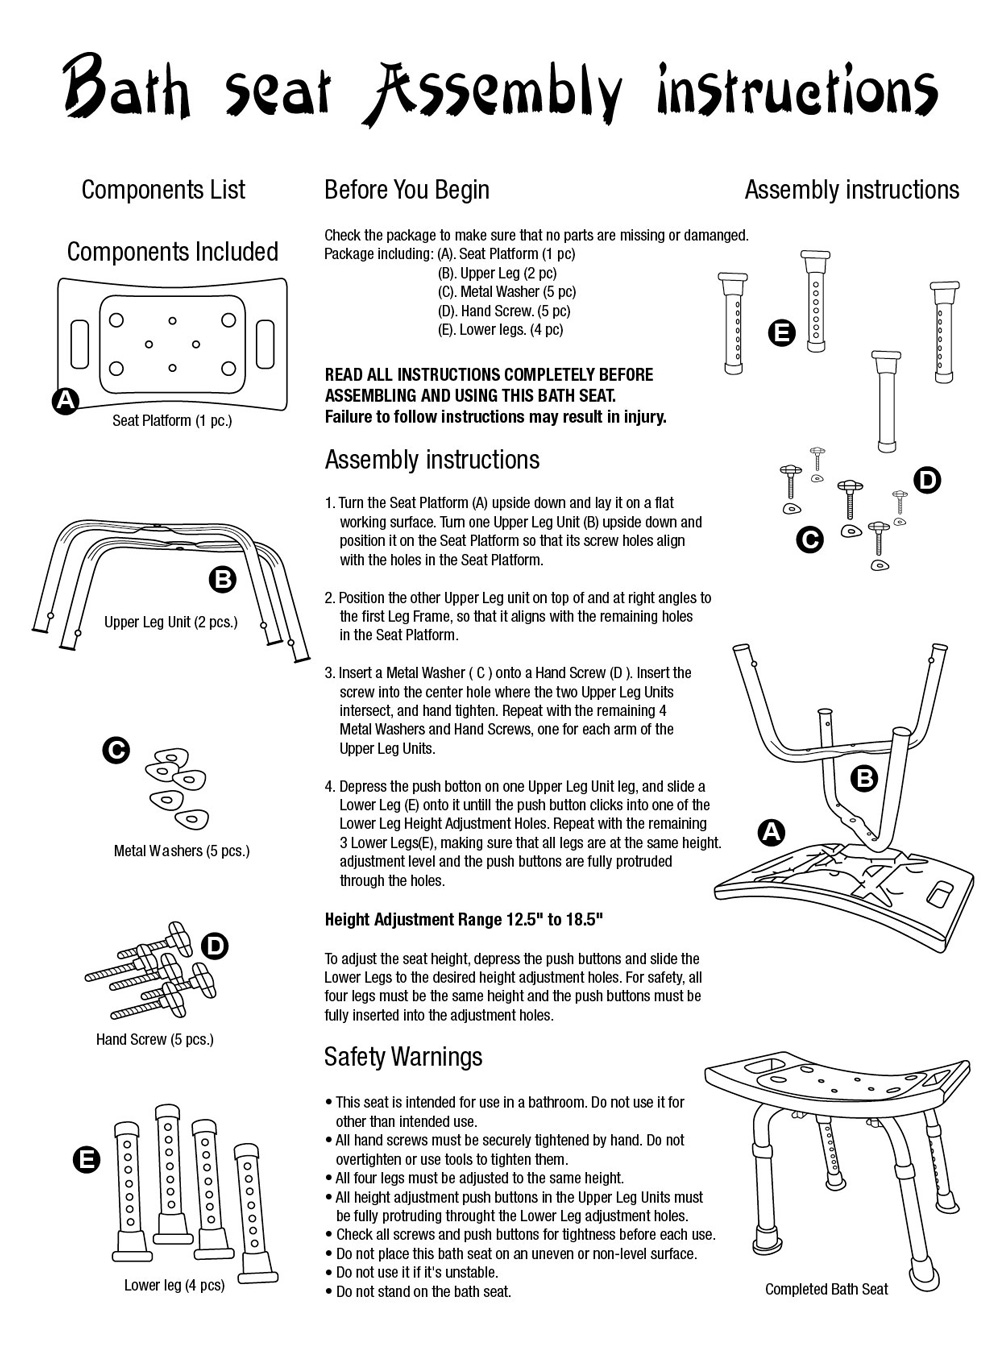 n connector assembly instructions